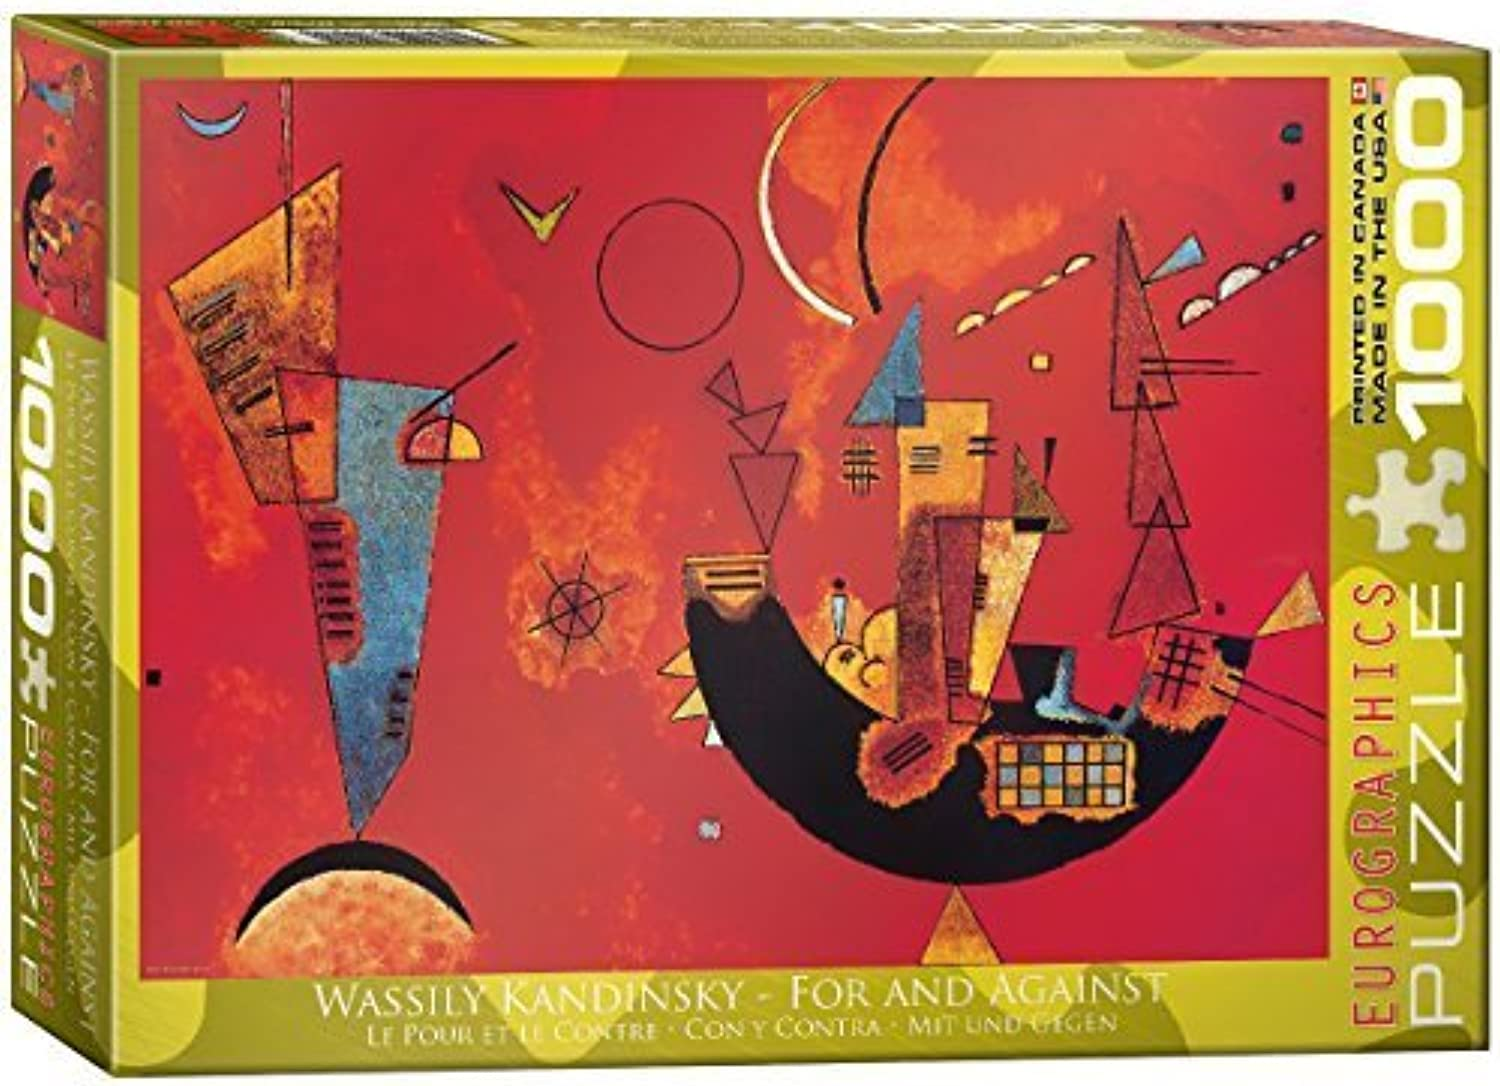 conveniente Eurographics For and Against by Wassily Kandinsky Puzzle (1000 (1000 (1000 Pieces) by Eurographics  te hará satisfecho